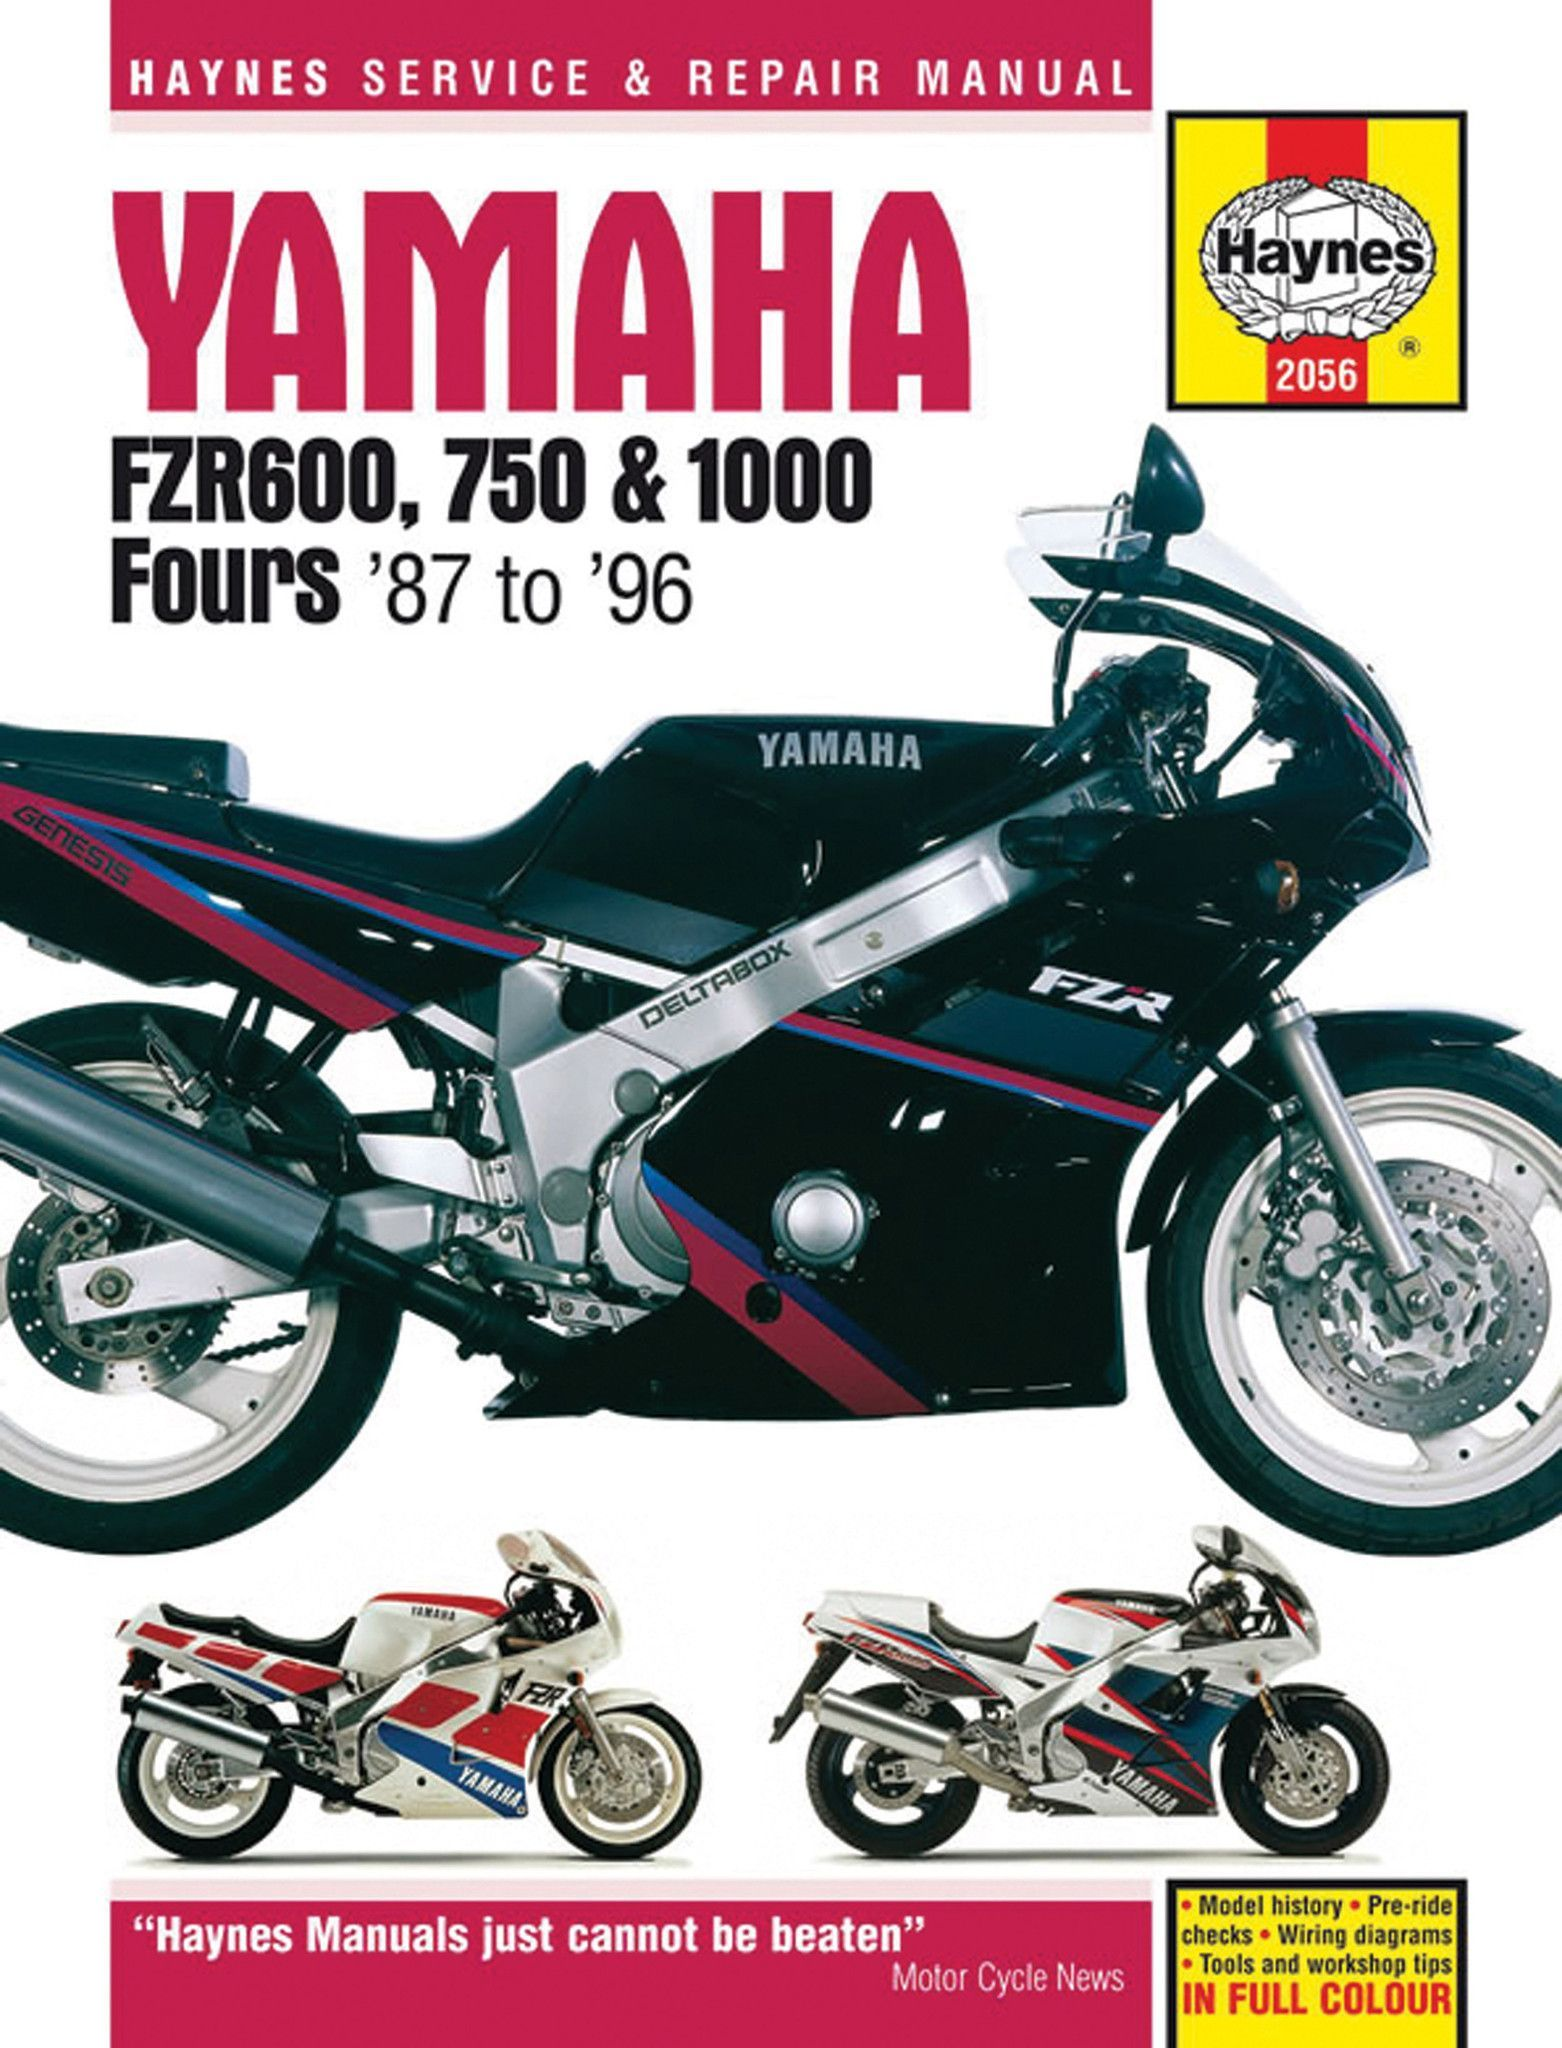 small resolution of wiring diagram needed for 1989 yamaha fzr1000 genesis wiring wiring diagram needed for 1989 yamaha fzr1000